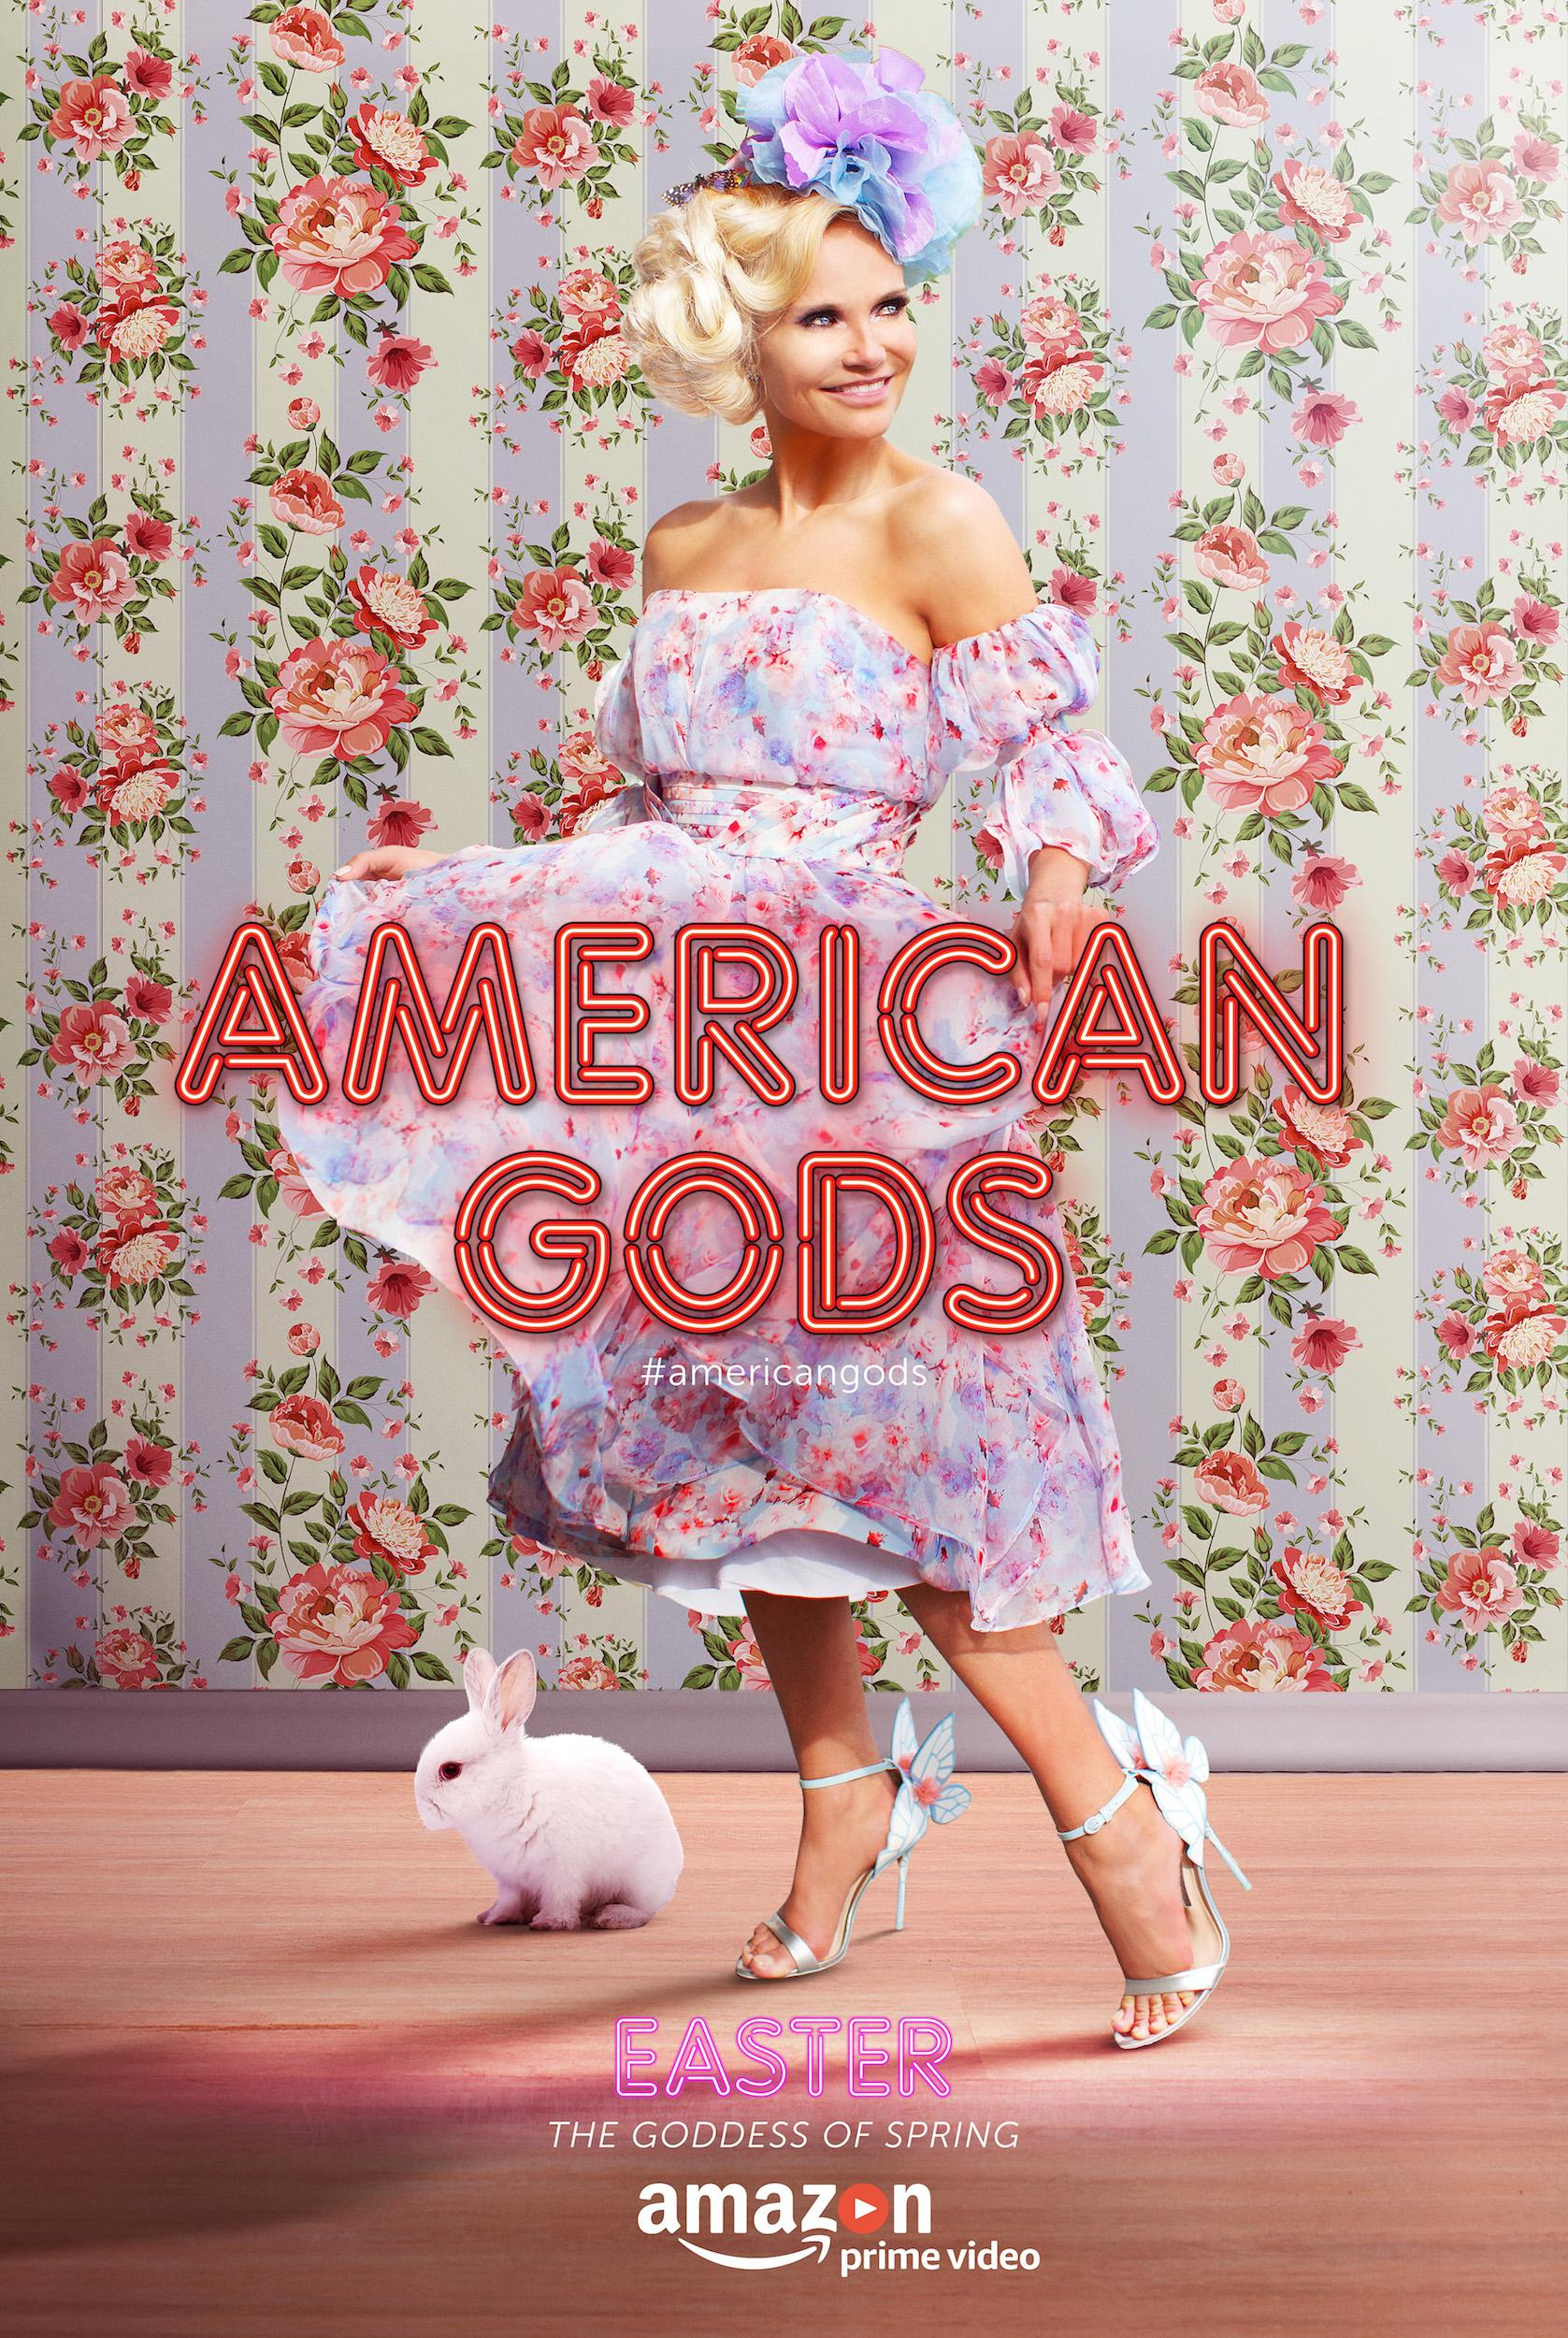 American Gods - Series -  Kristin Chenoweth as Easter - the goddess of spring